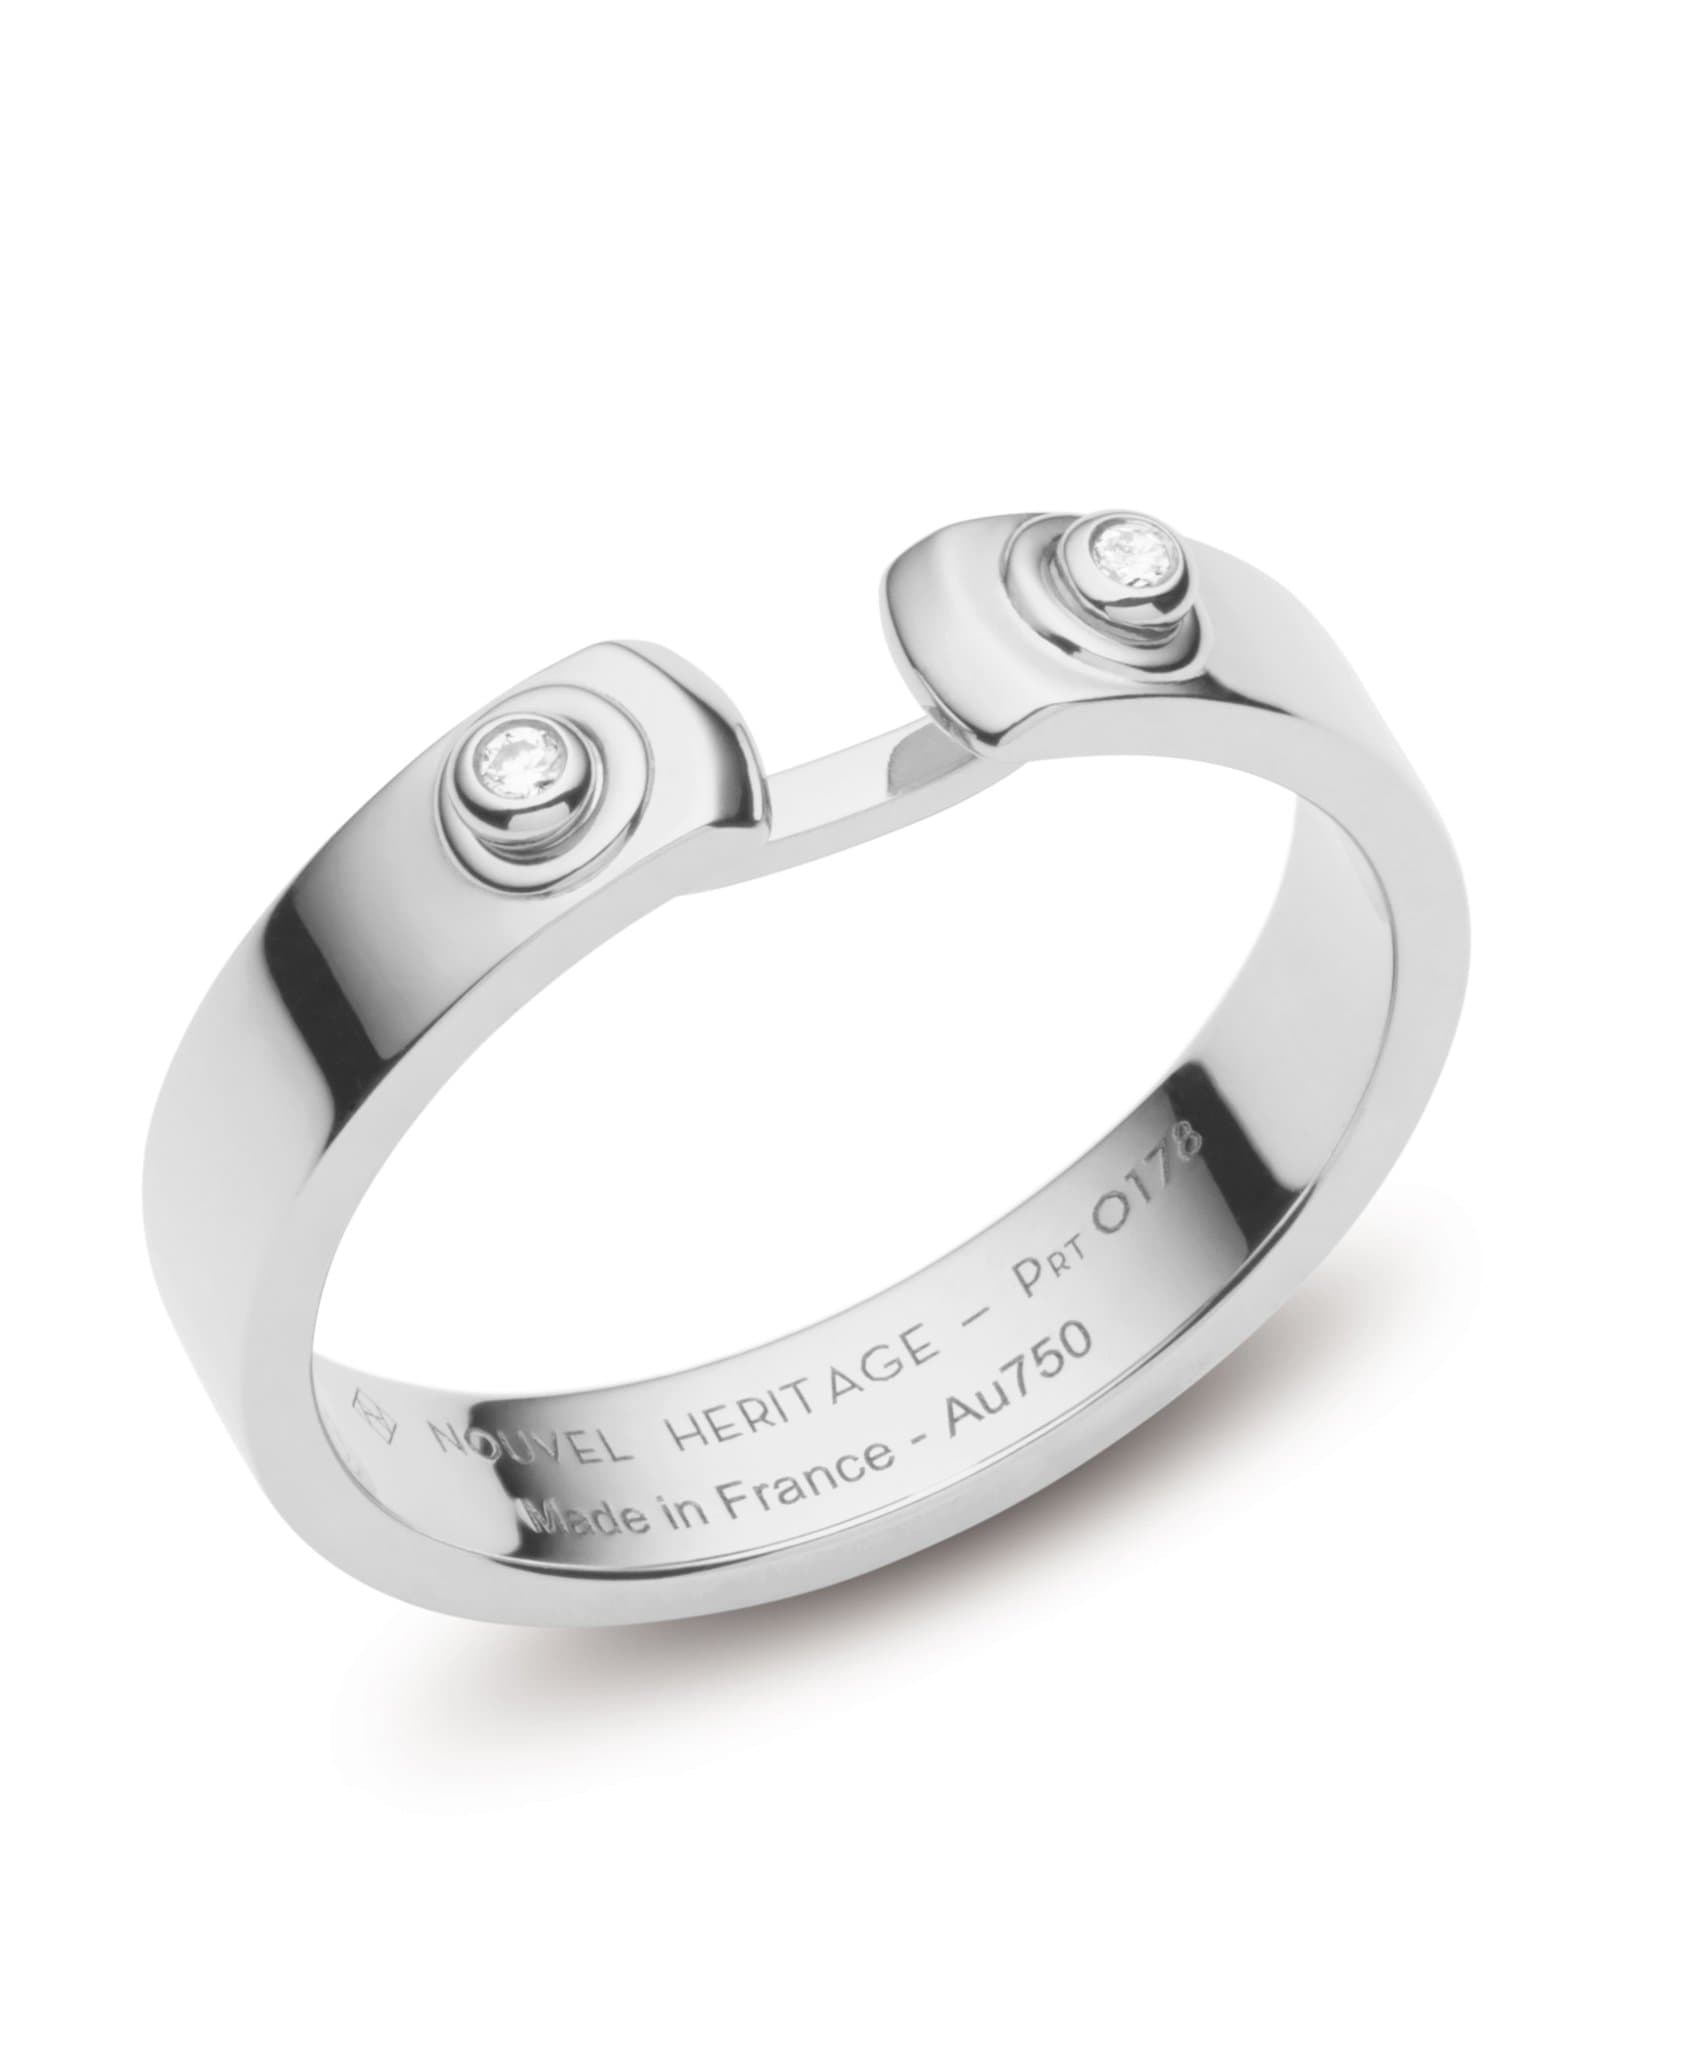 Monday Morning Mood Ring: Discover Luxury Fine Jewelry | Nouvel Heritage || White Gold